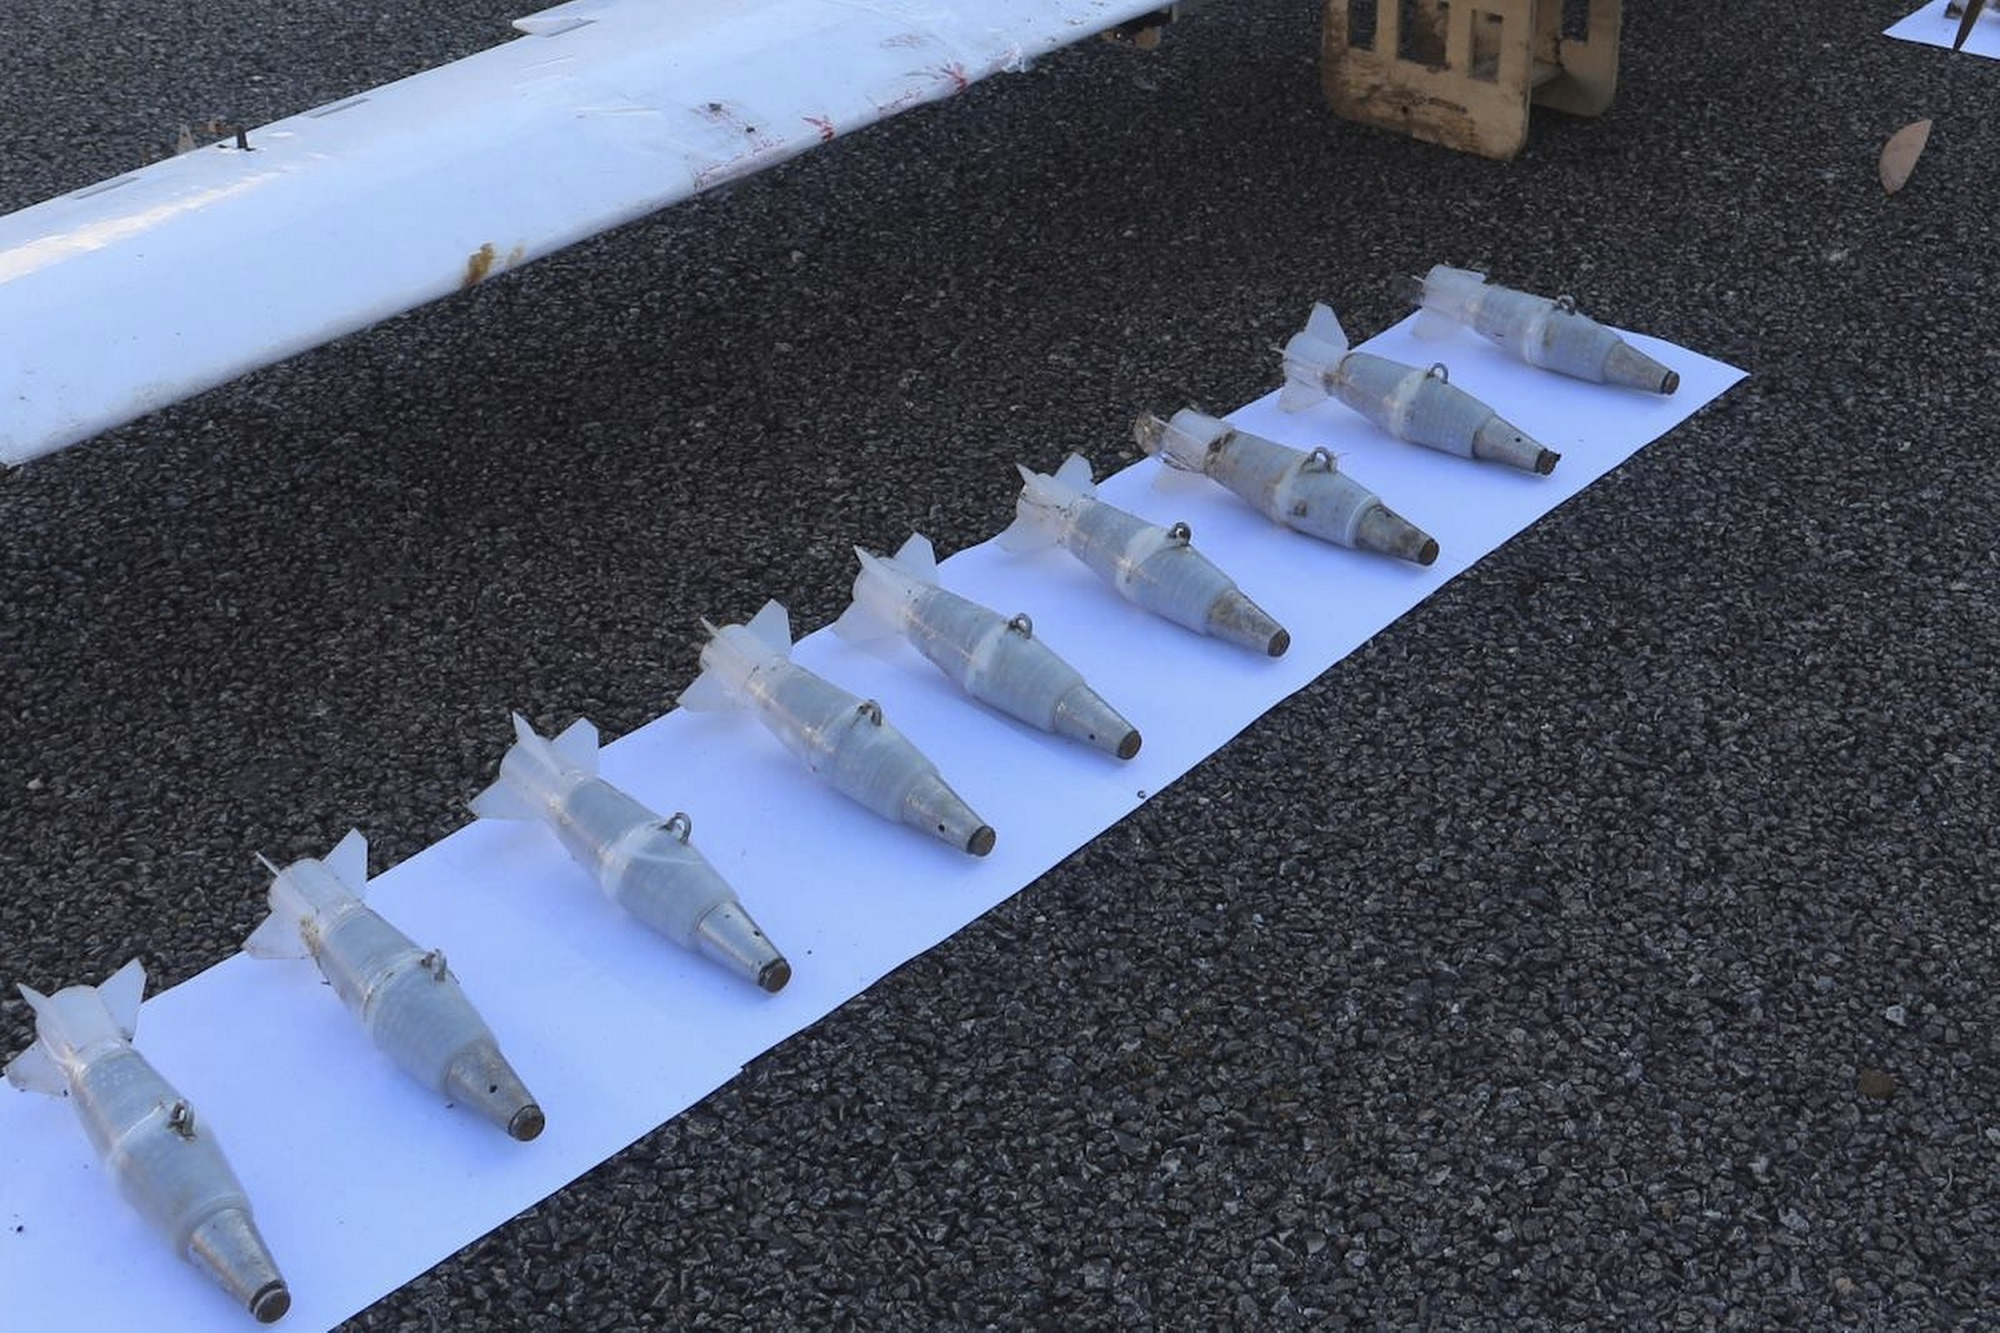 Mortar shells are lined up next to one of the drones that was forced to land after an unsuccessful attack attempt at Hemeimeem air base in Syria. (Russian Defence Ministry Press Service via AP)